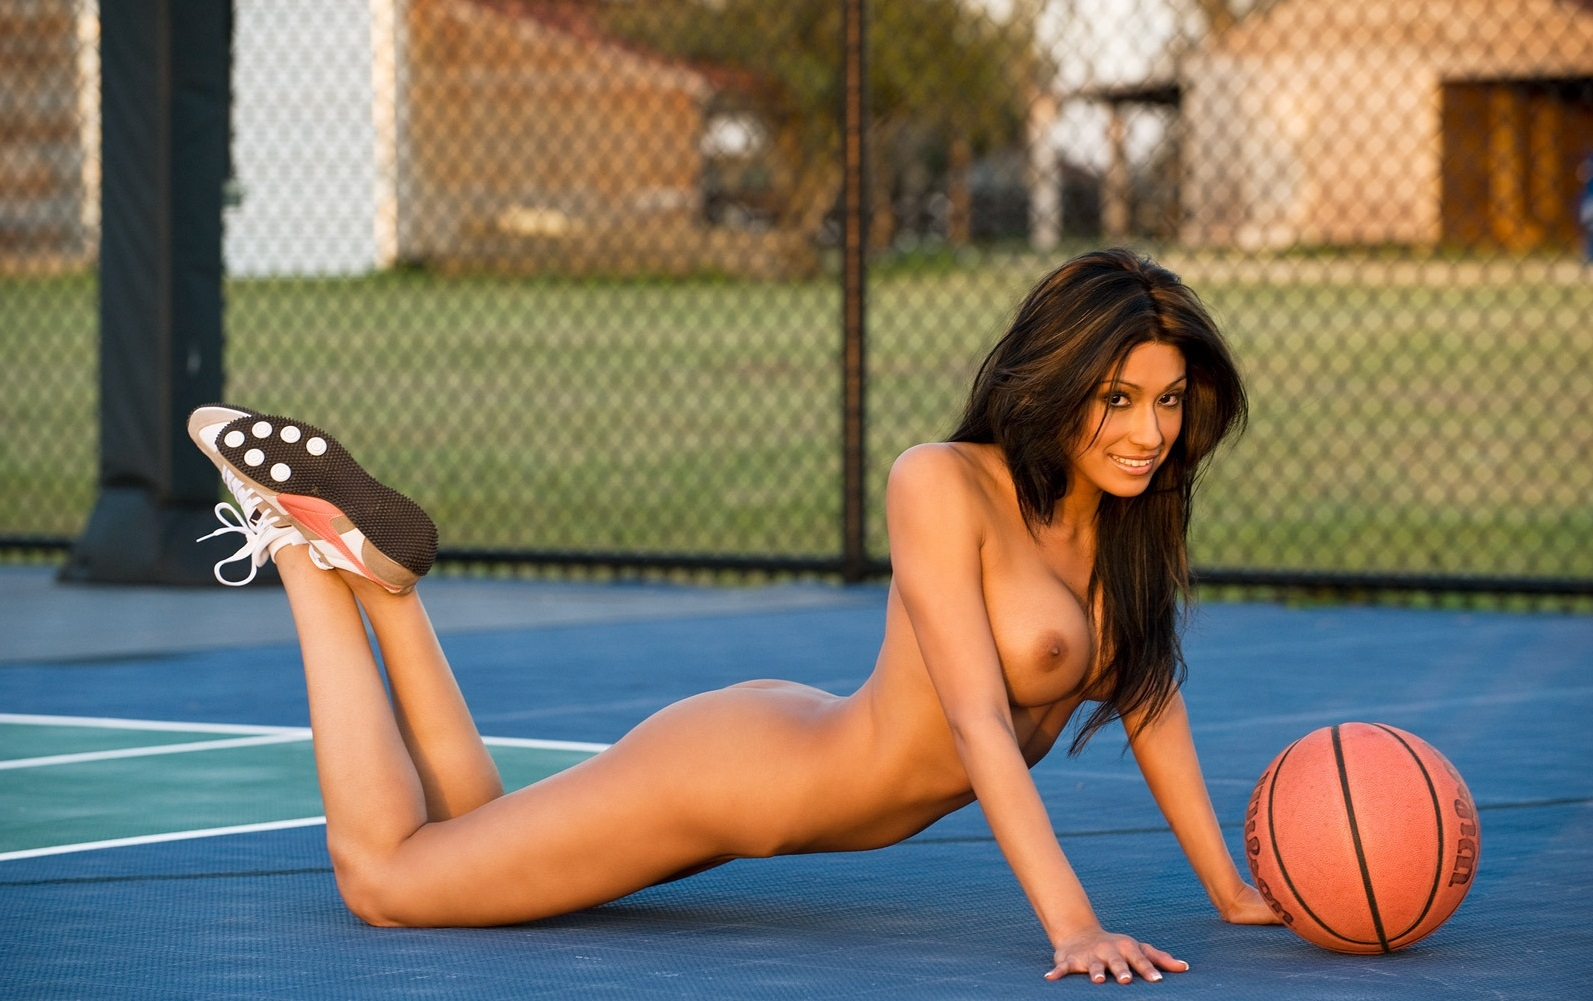 Find sexy naked basketball players young